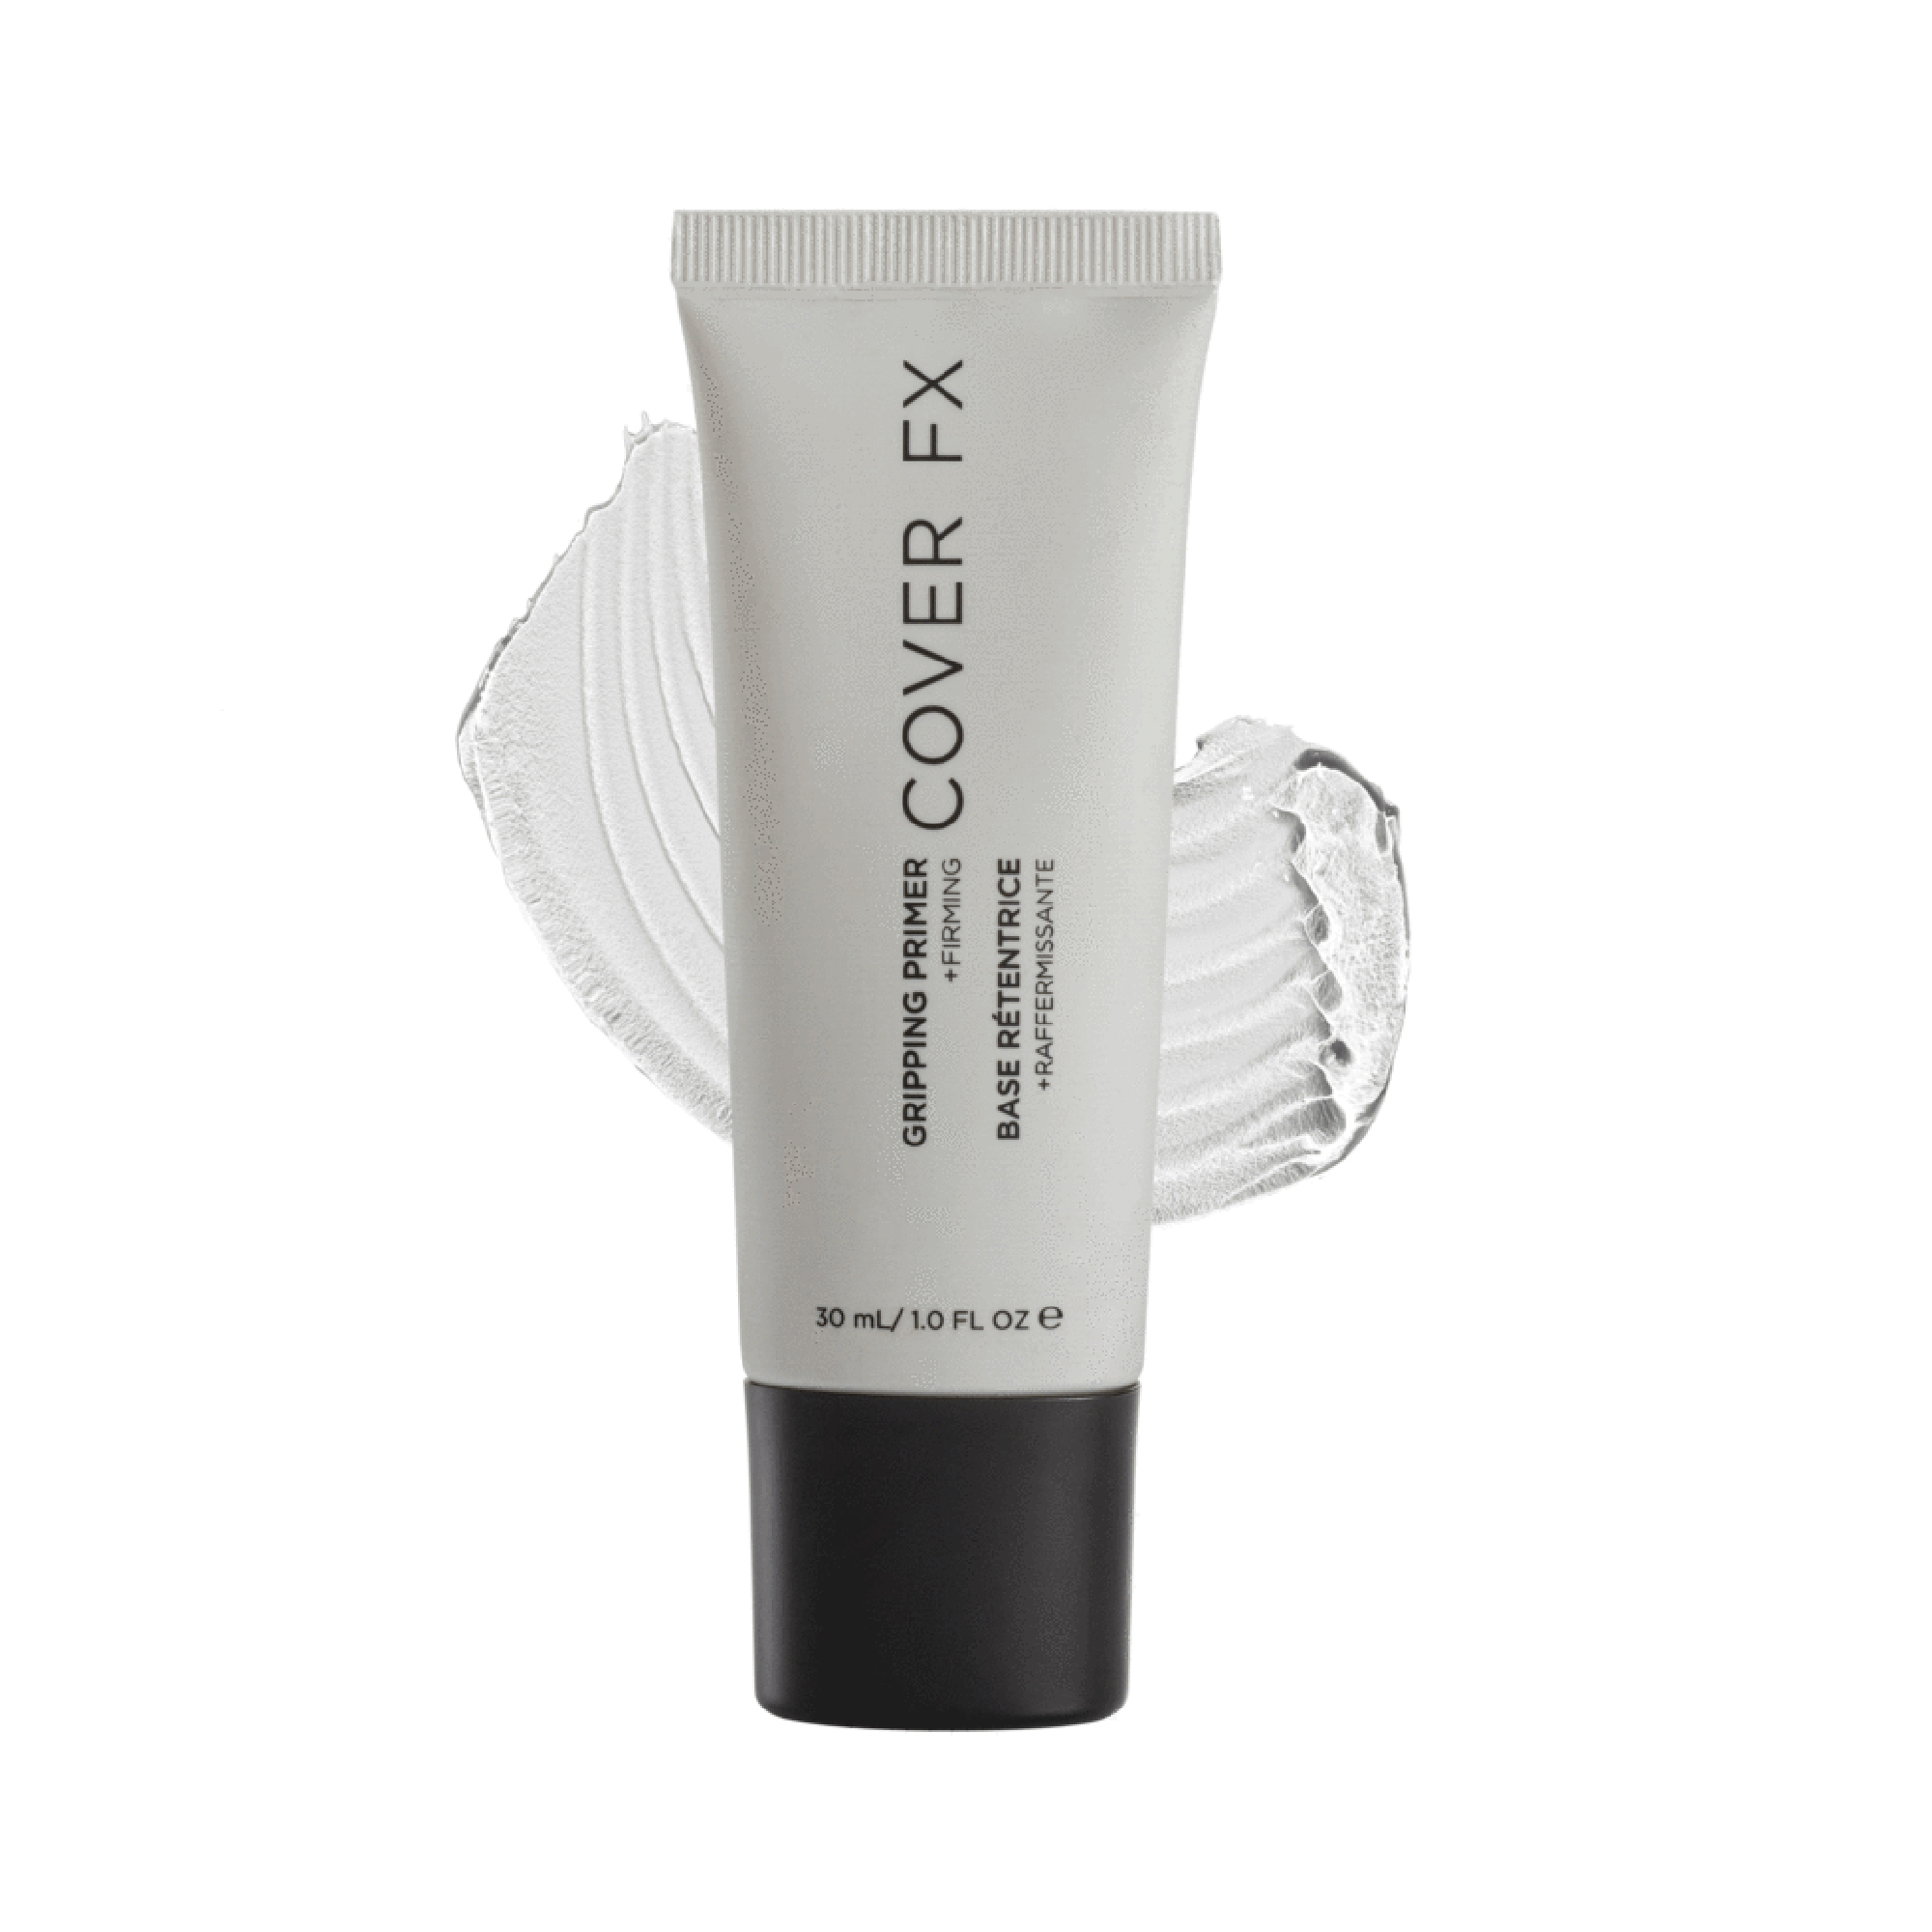 10 Long-Wearing Beauty Products to Up Your Date Night Confidence - Keep your makeup in place all night long with this jelly-like base that creates a glassy finish thanks to skin-smoothing botanical extracts. $38, sephora.com